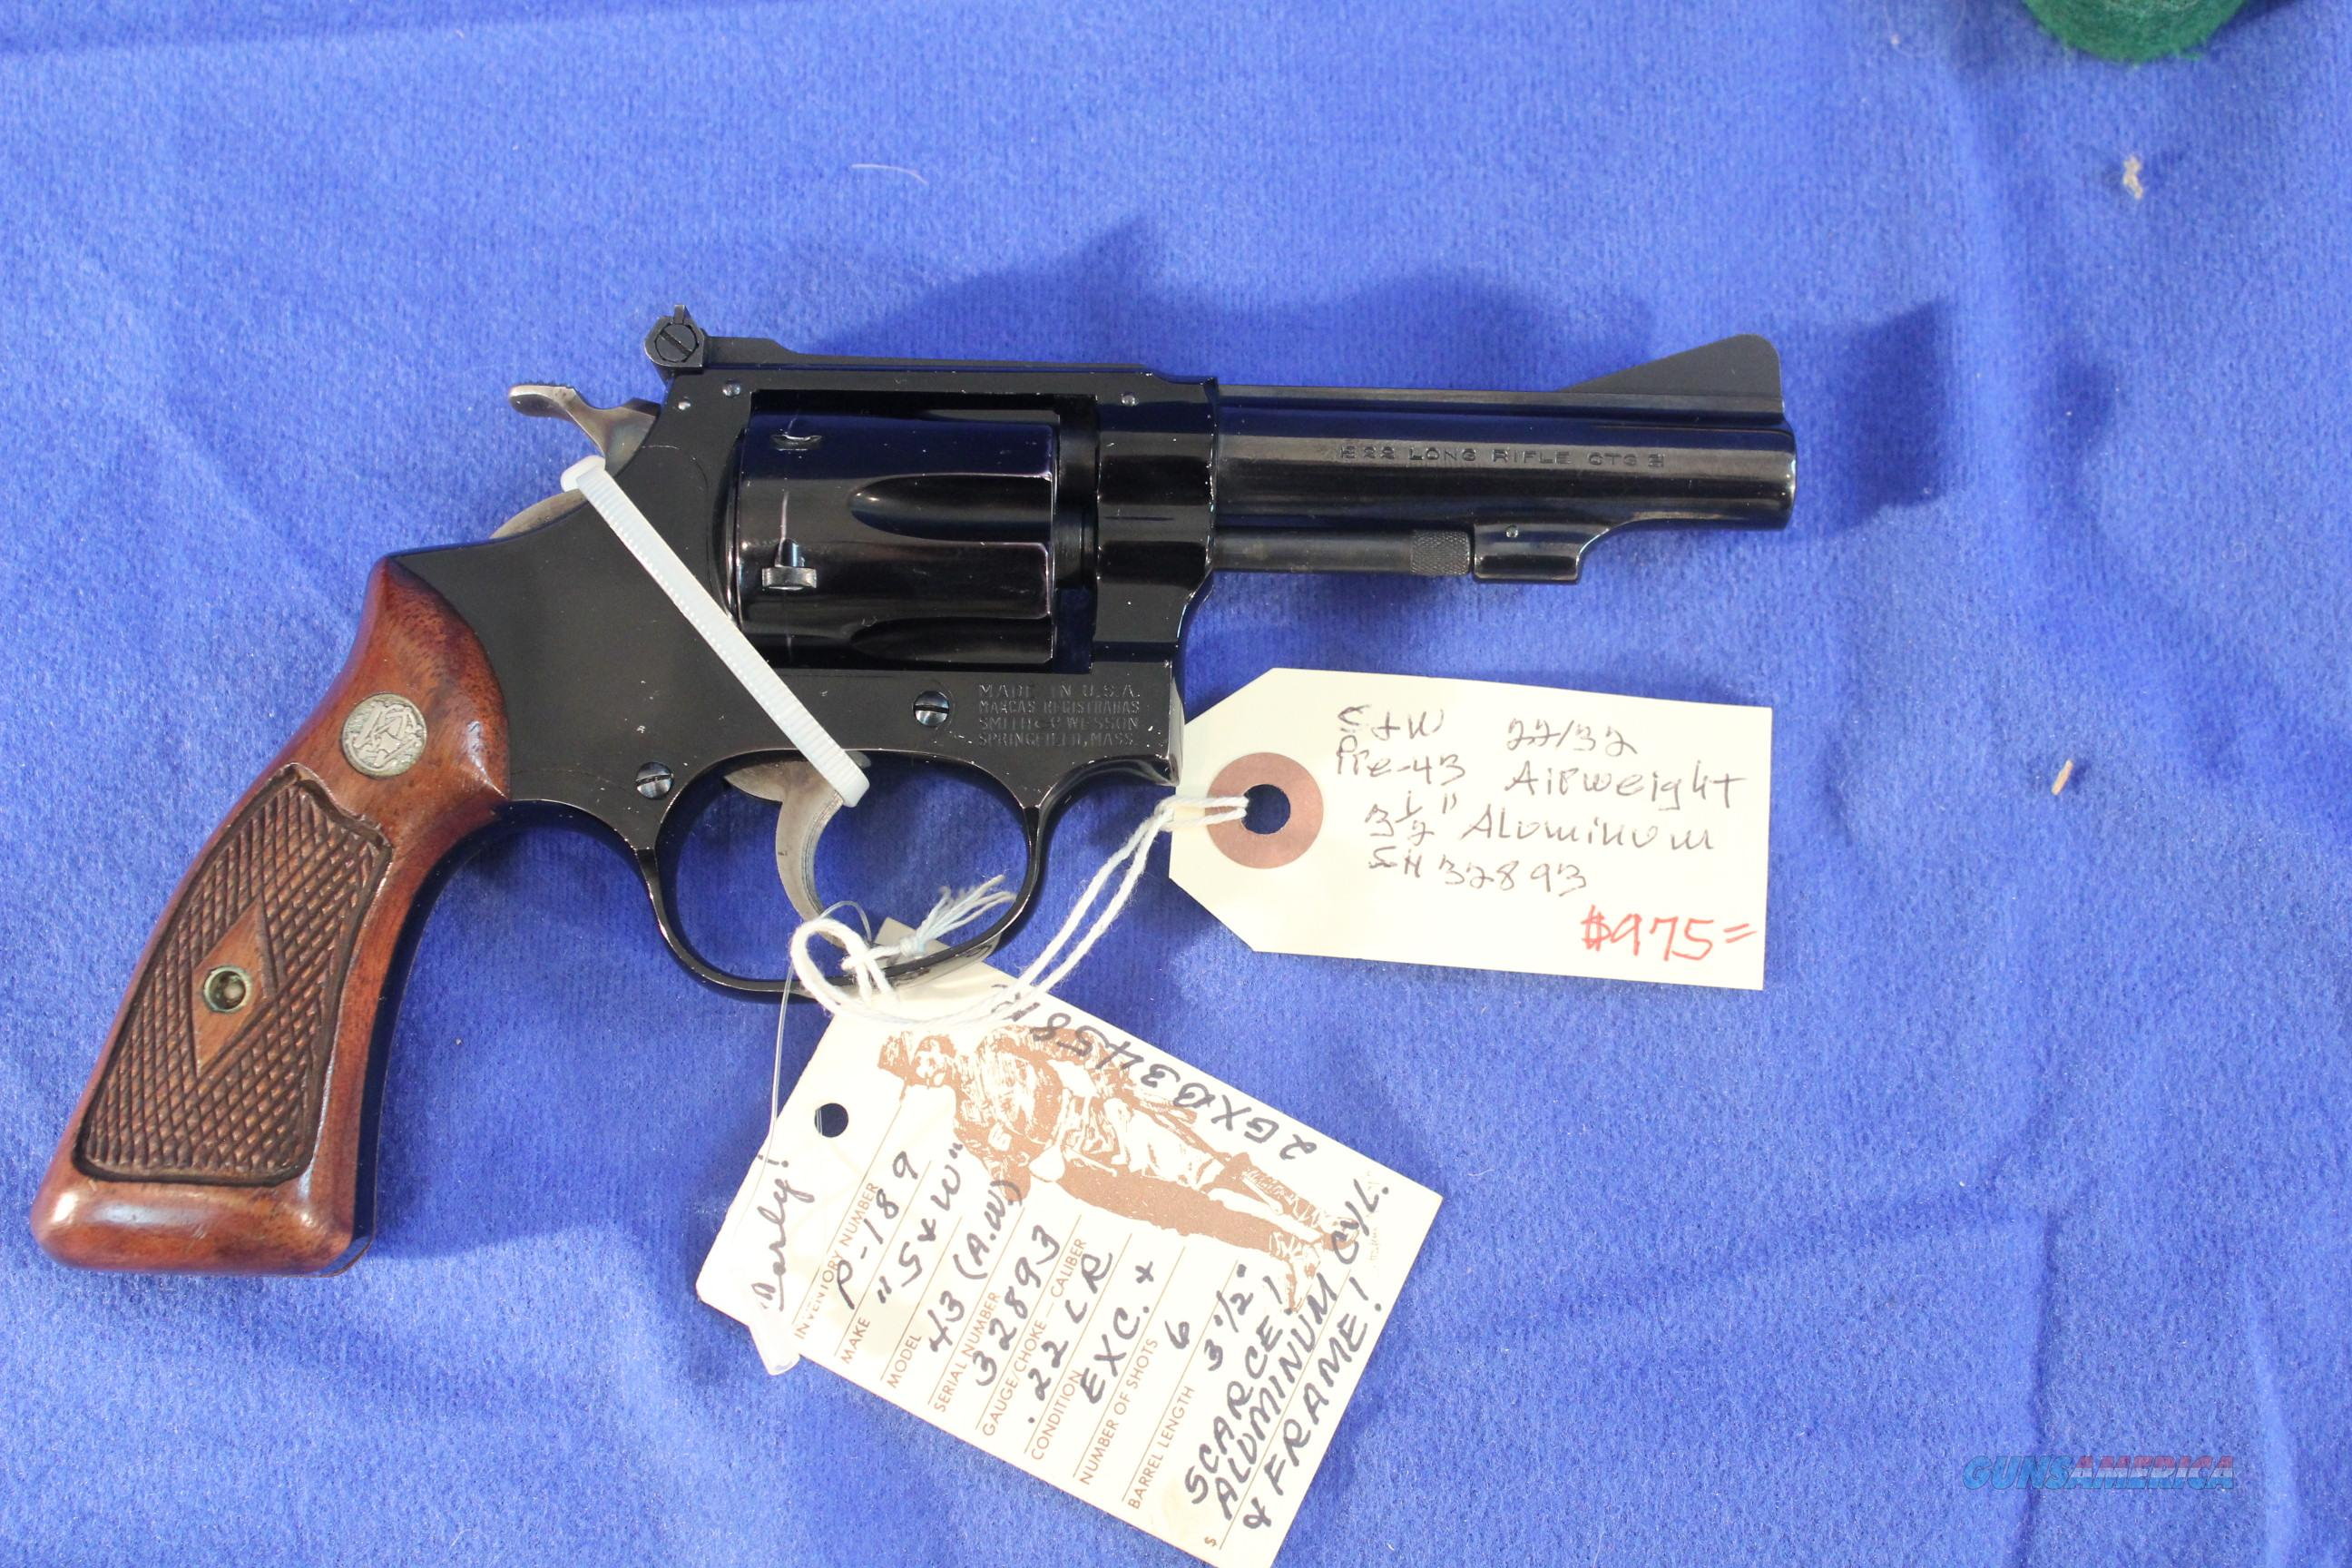 Early Smith & Wesson 22/32 predecessor to the Model 43 with Aluminum Frame and Cylinder  Guns > Pistols > Smith & Wesson Revolvers > Pocket Pistols